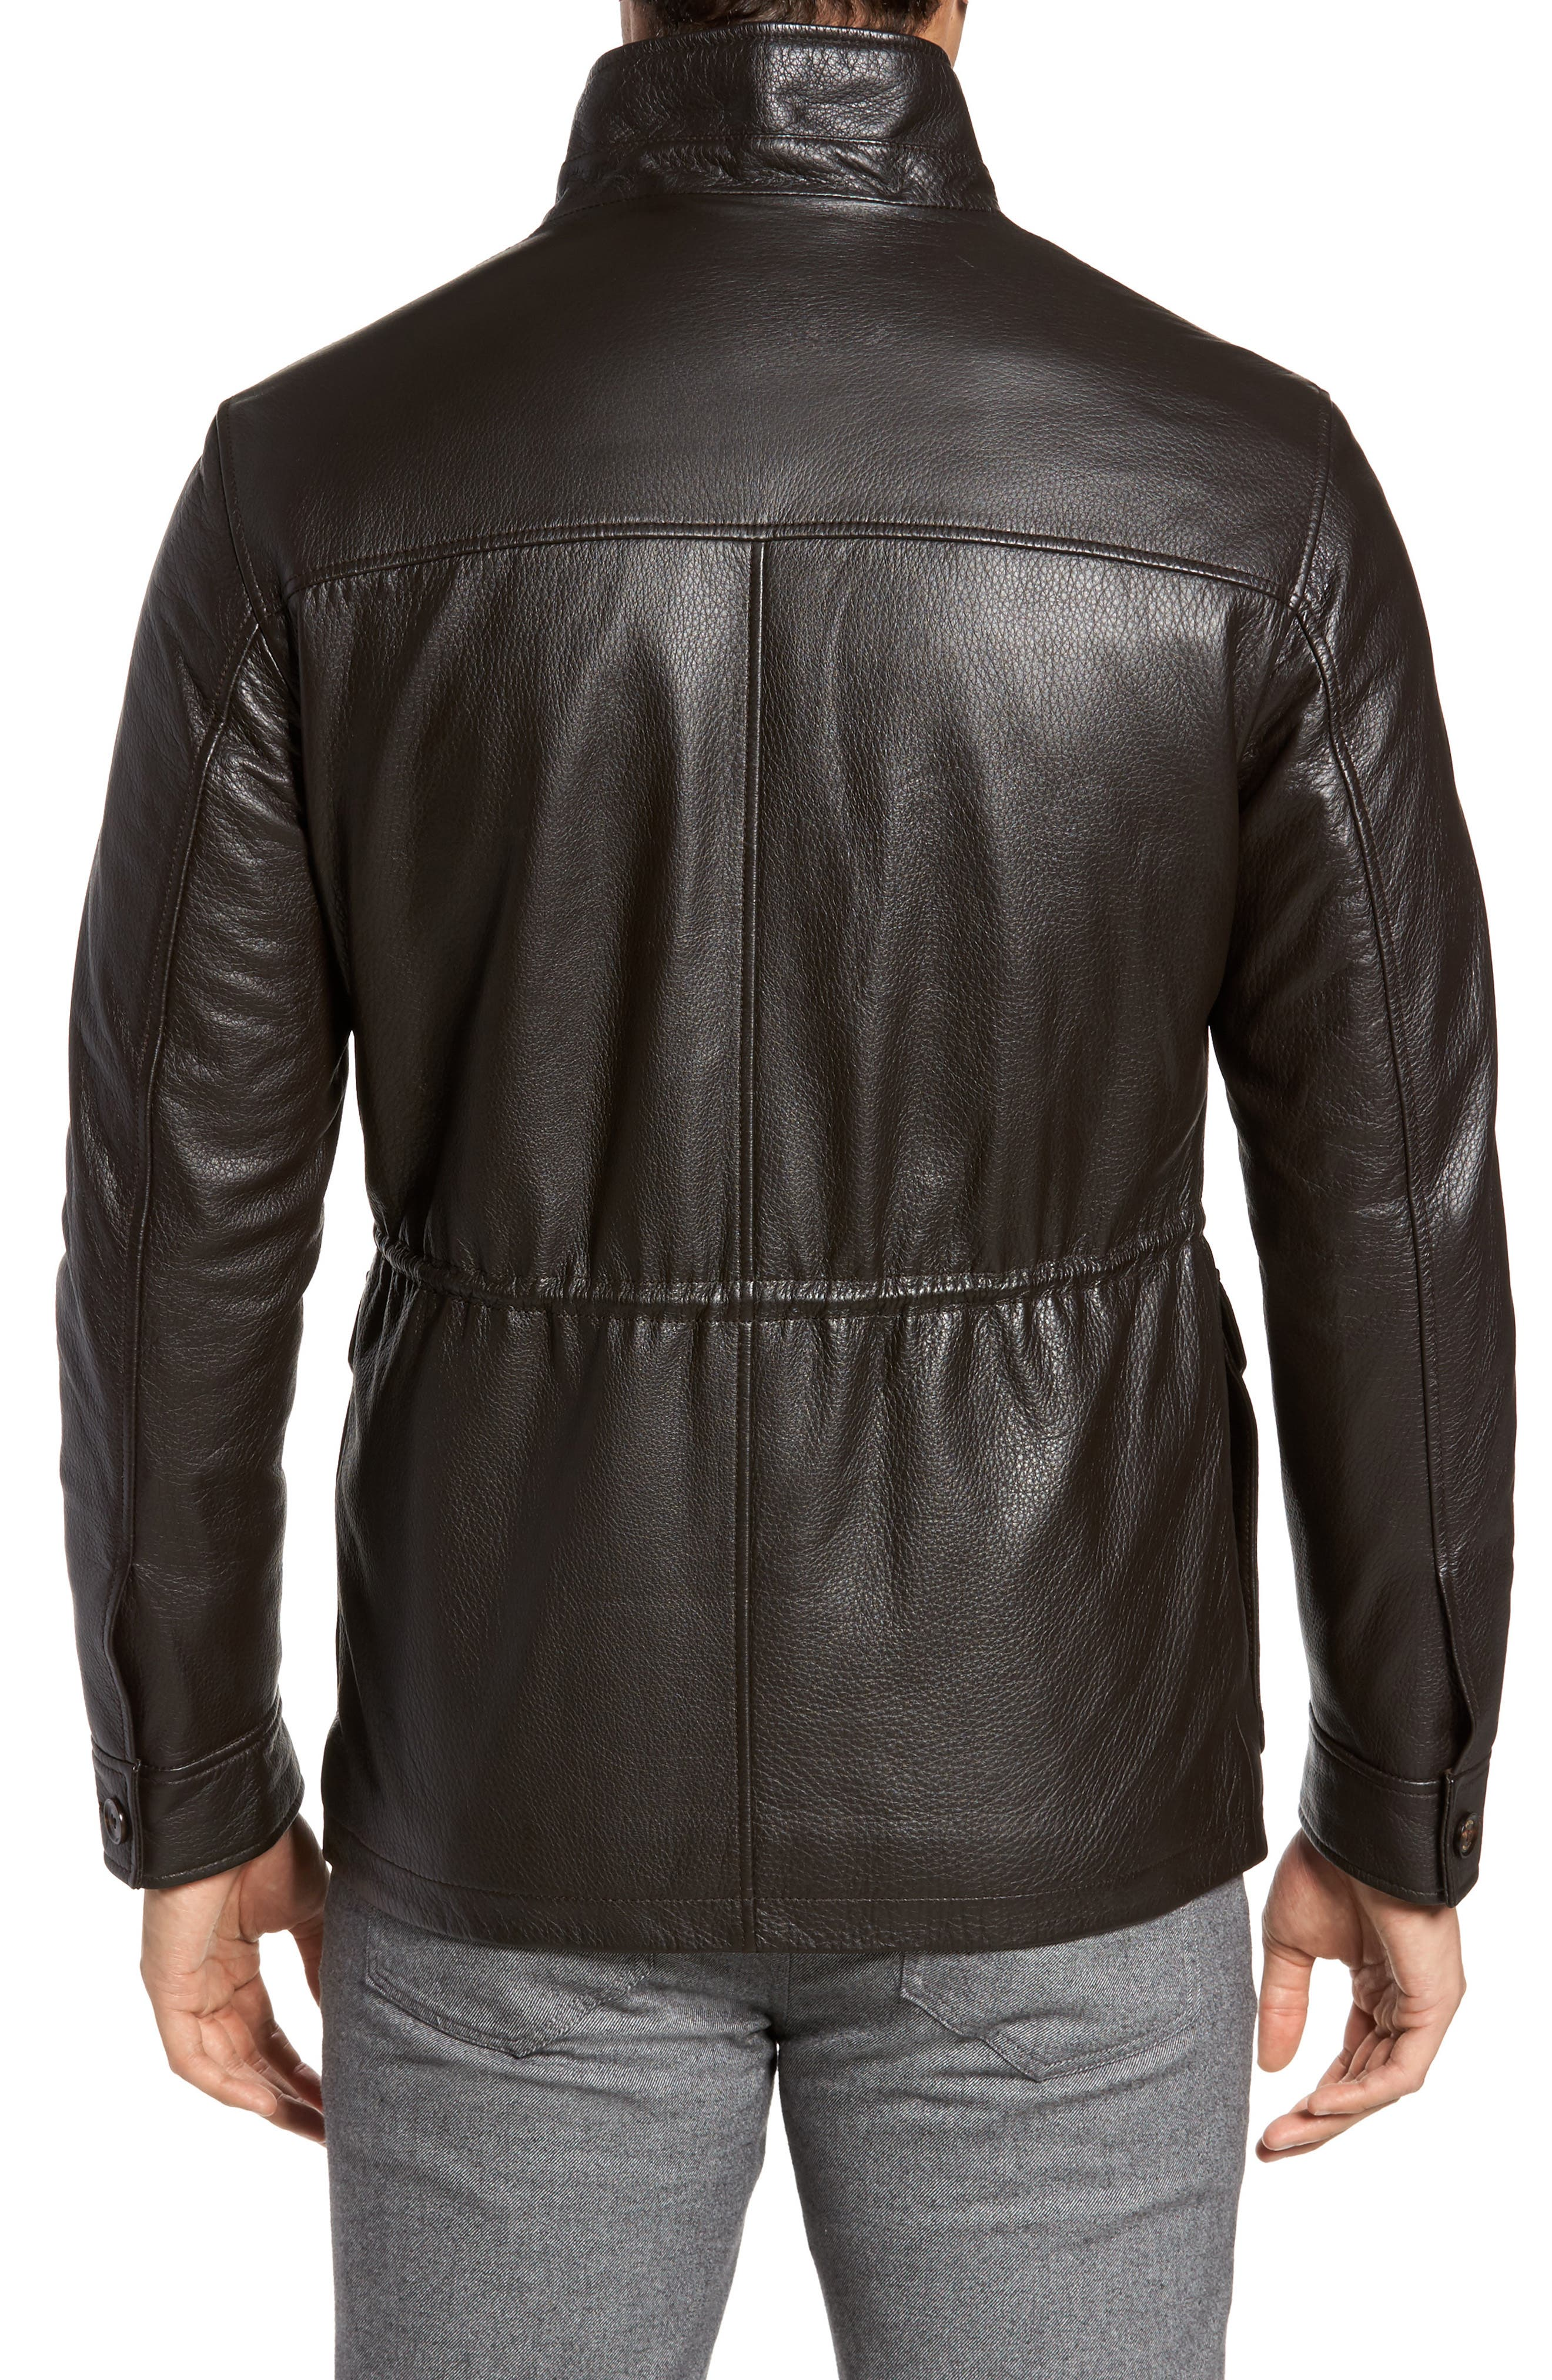 Woodland Discovery Deerskin Leather Jacket,                             Alternate thumbnail 2, color,                             203